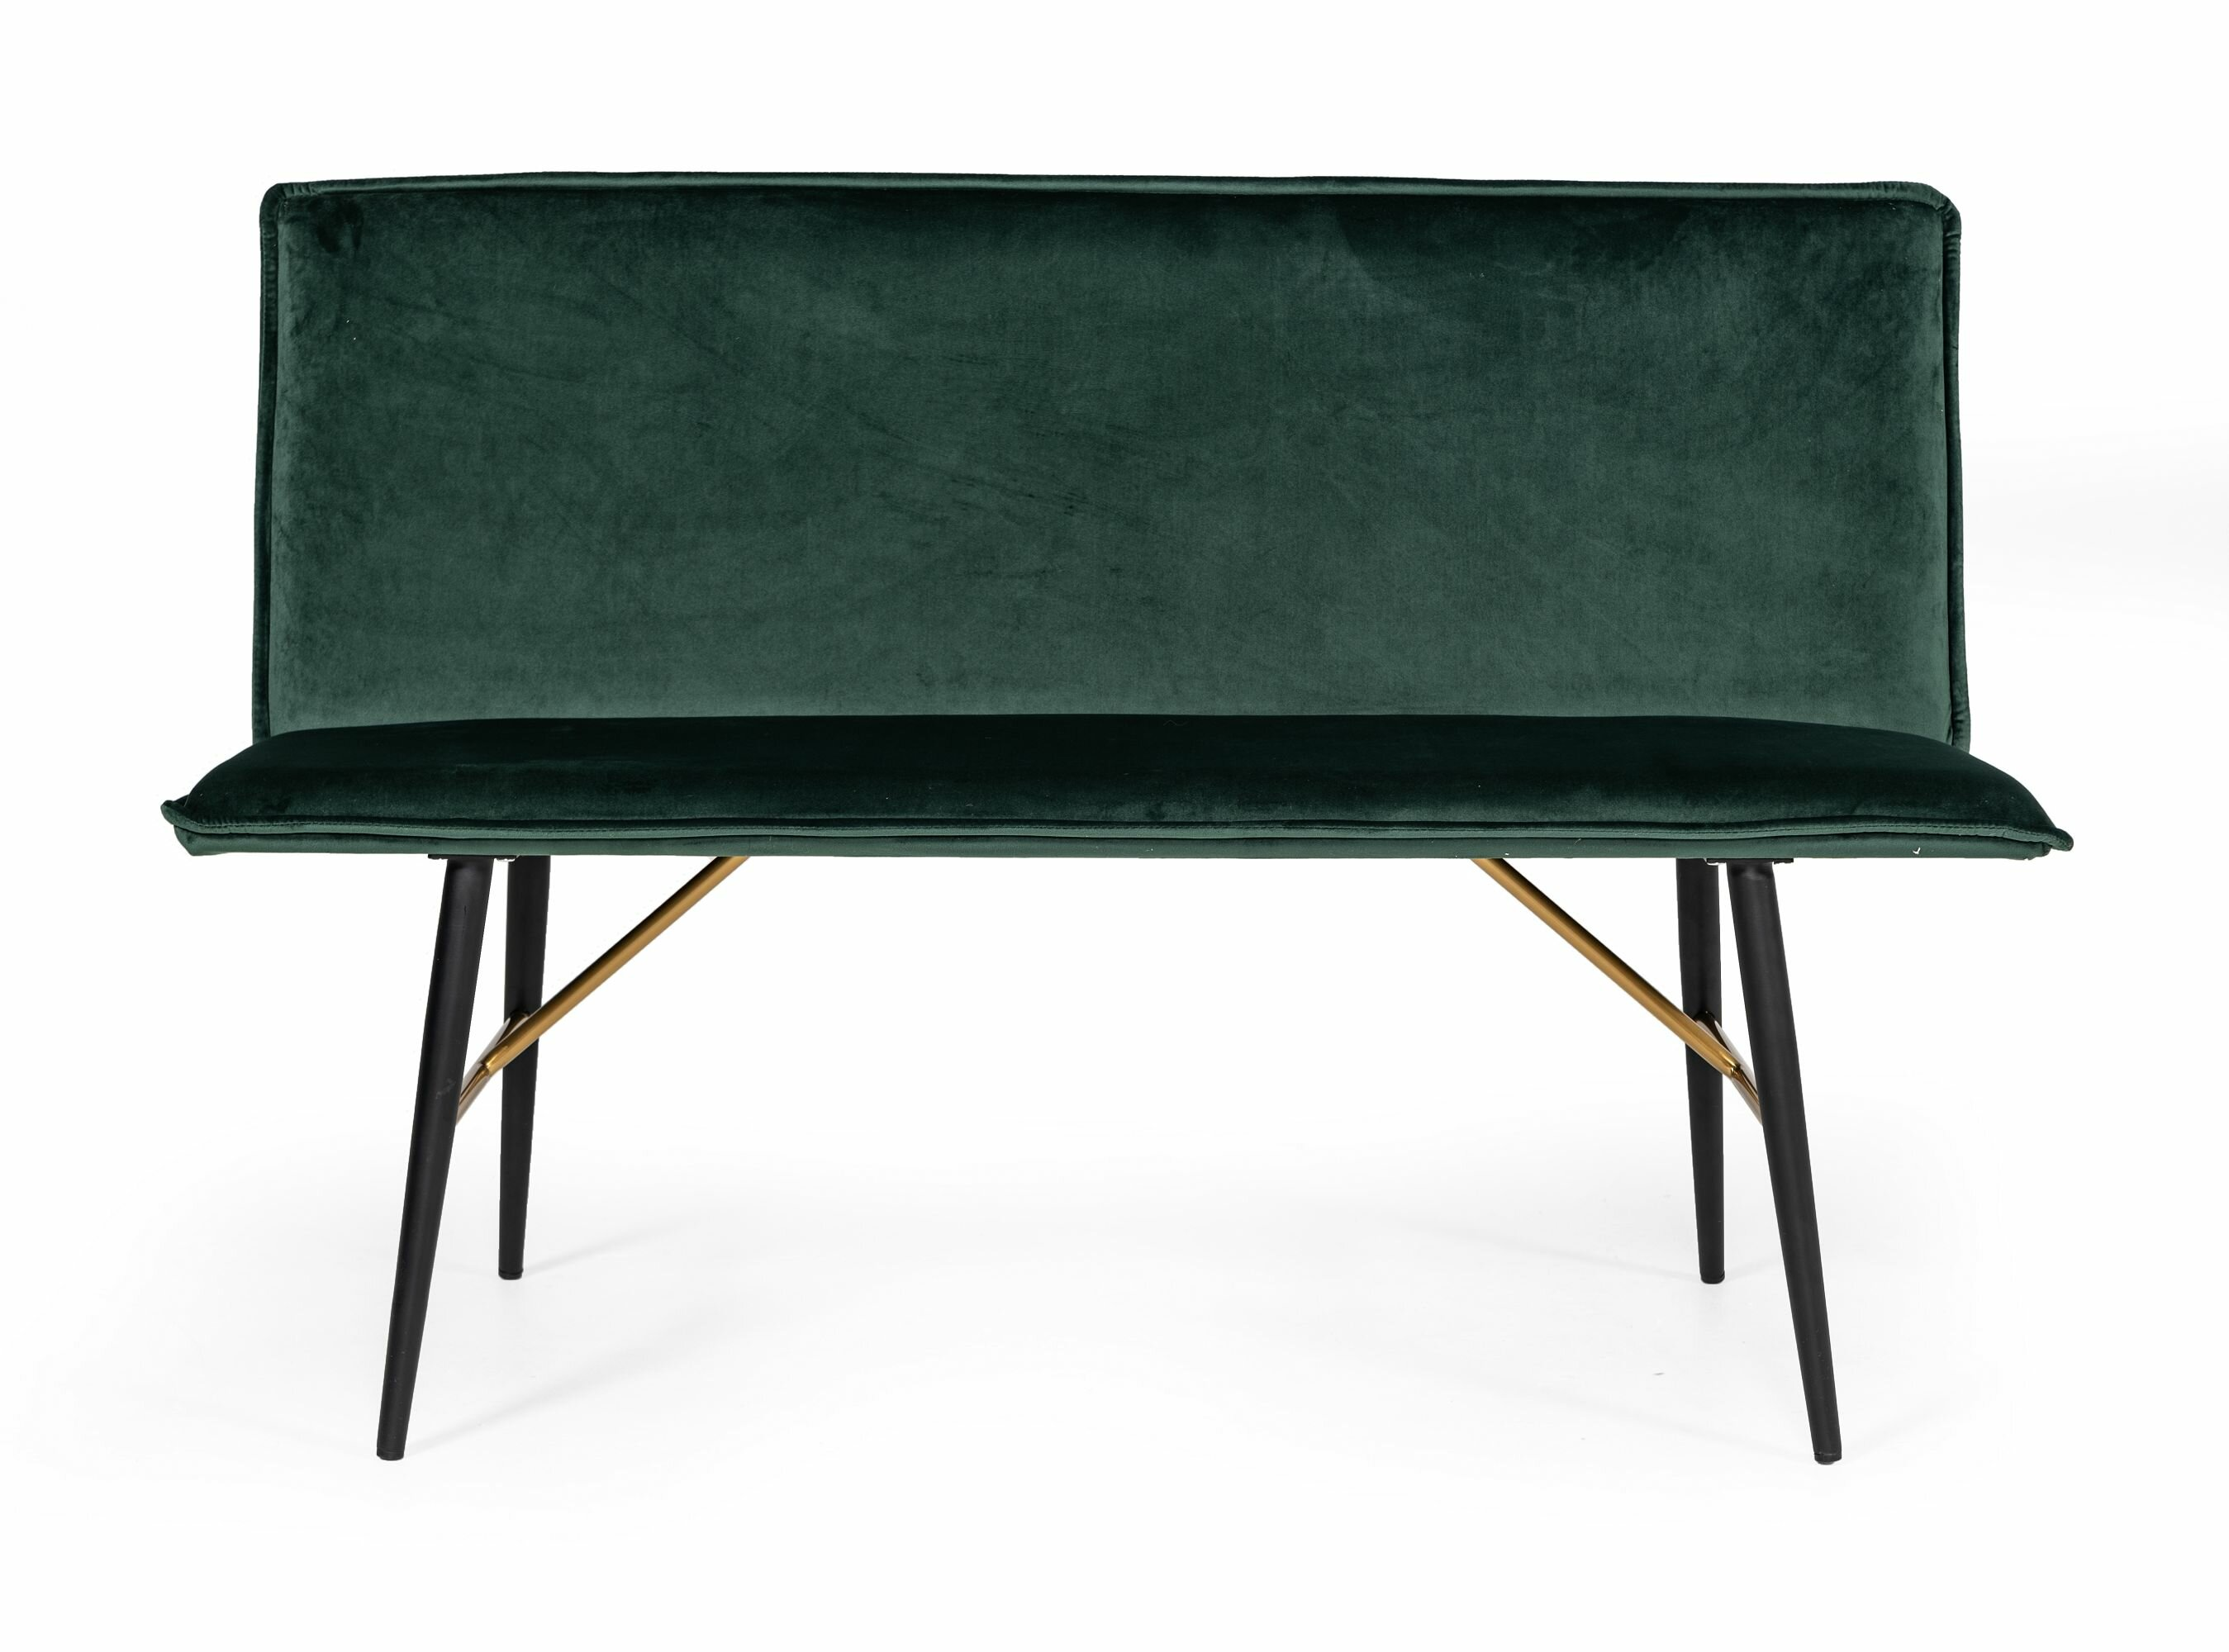 Pleasing Serena Upholstered Bench Bralicious Painted Fabric Chair Ideas Braliciousco